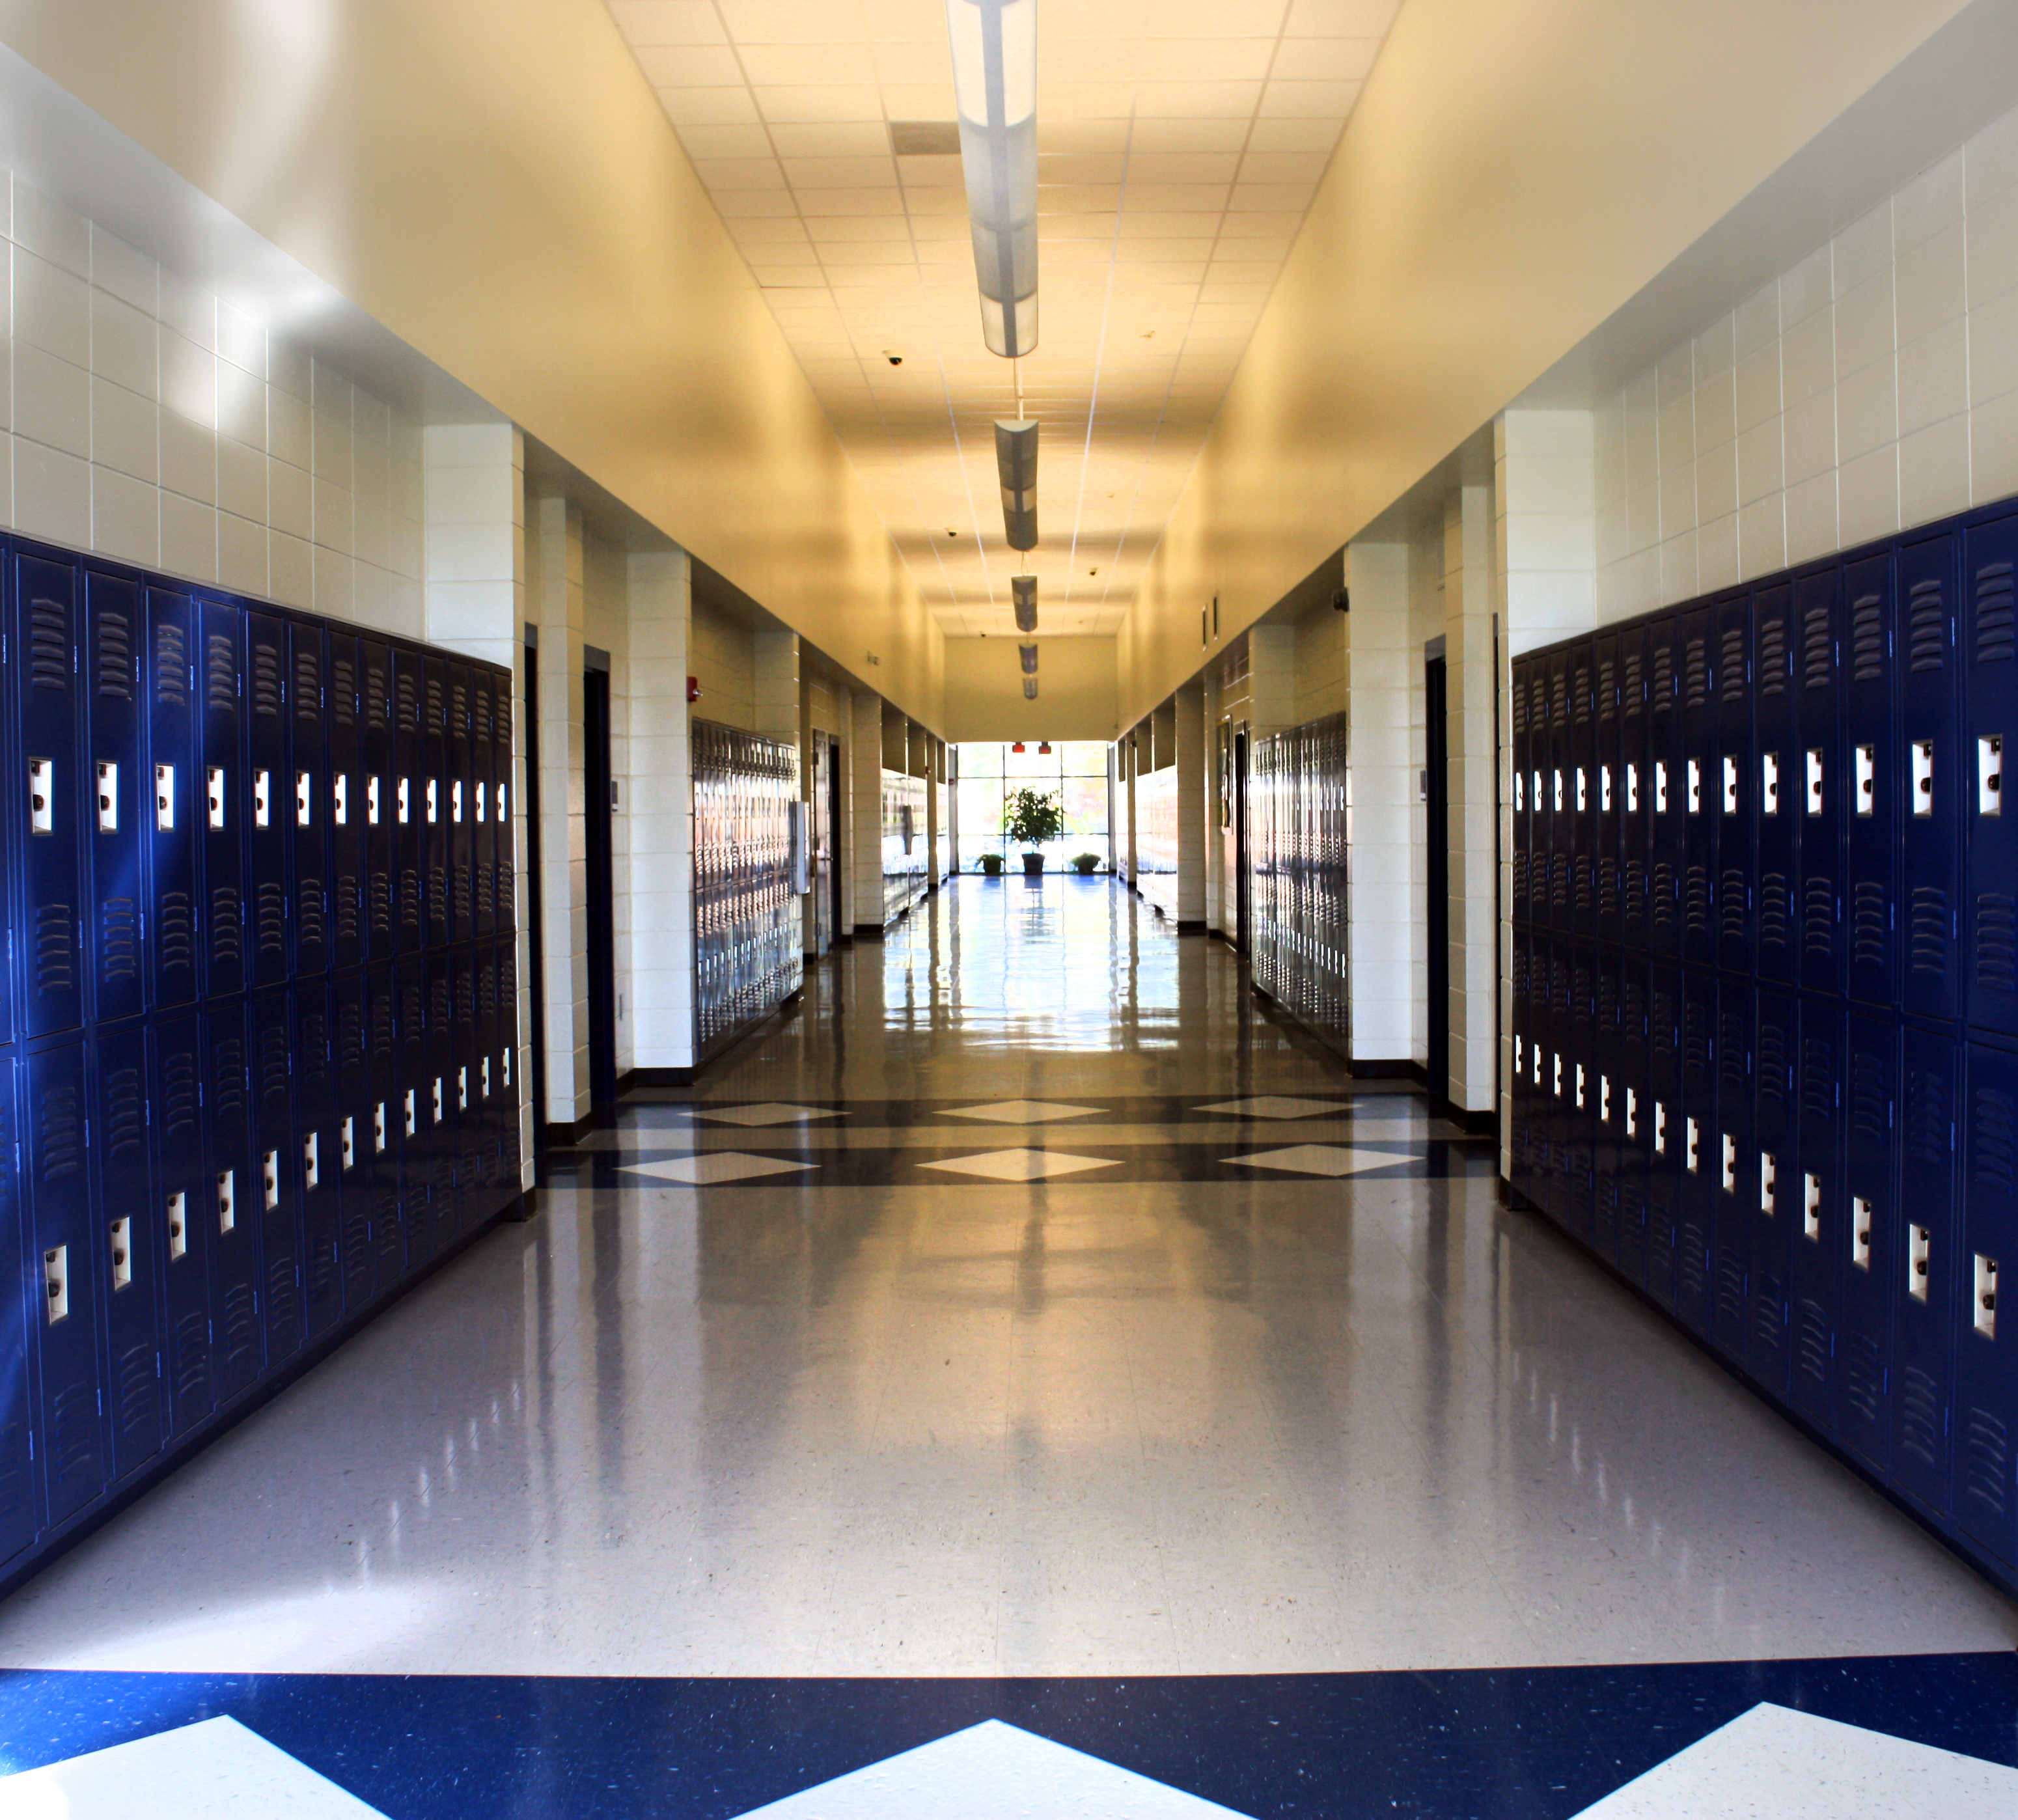 school hallway background - photo #8